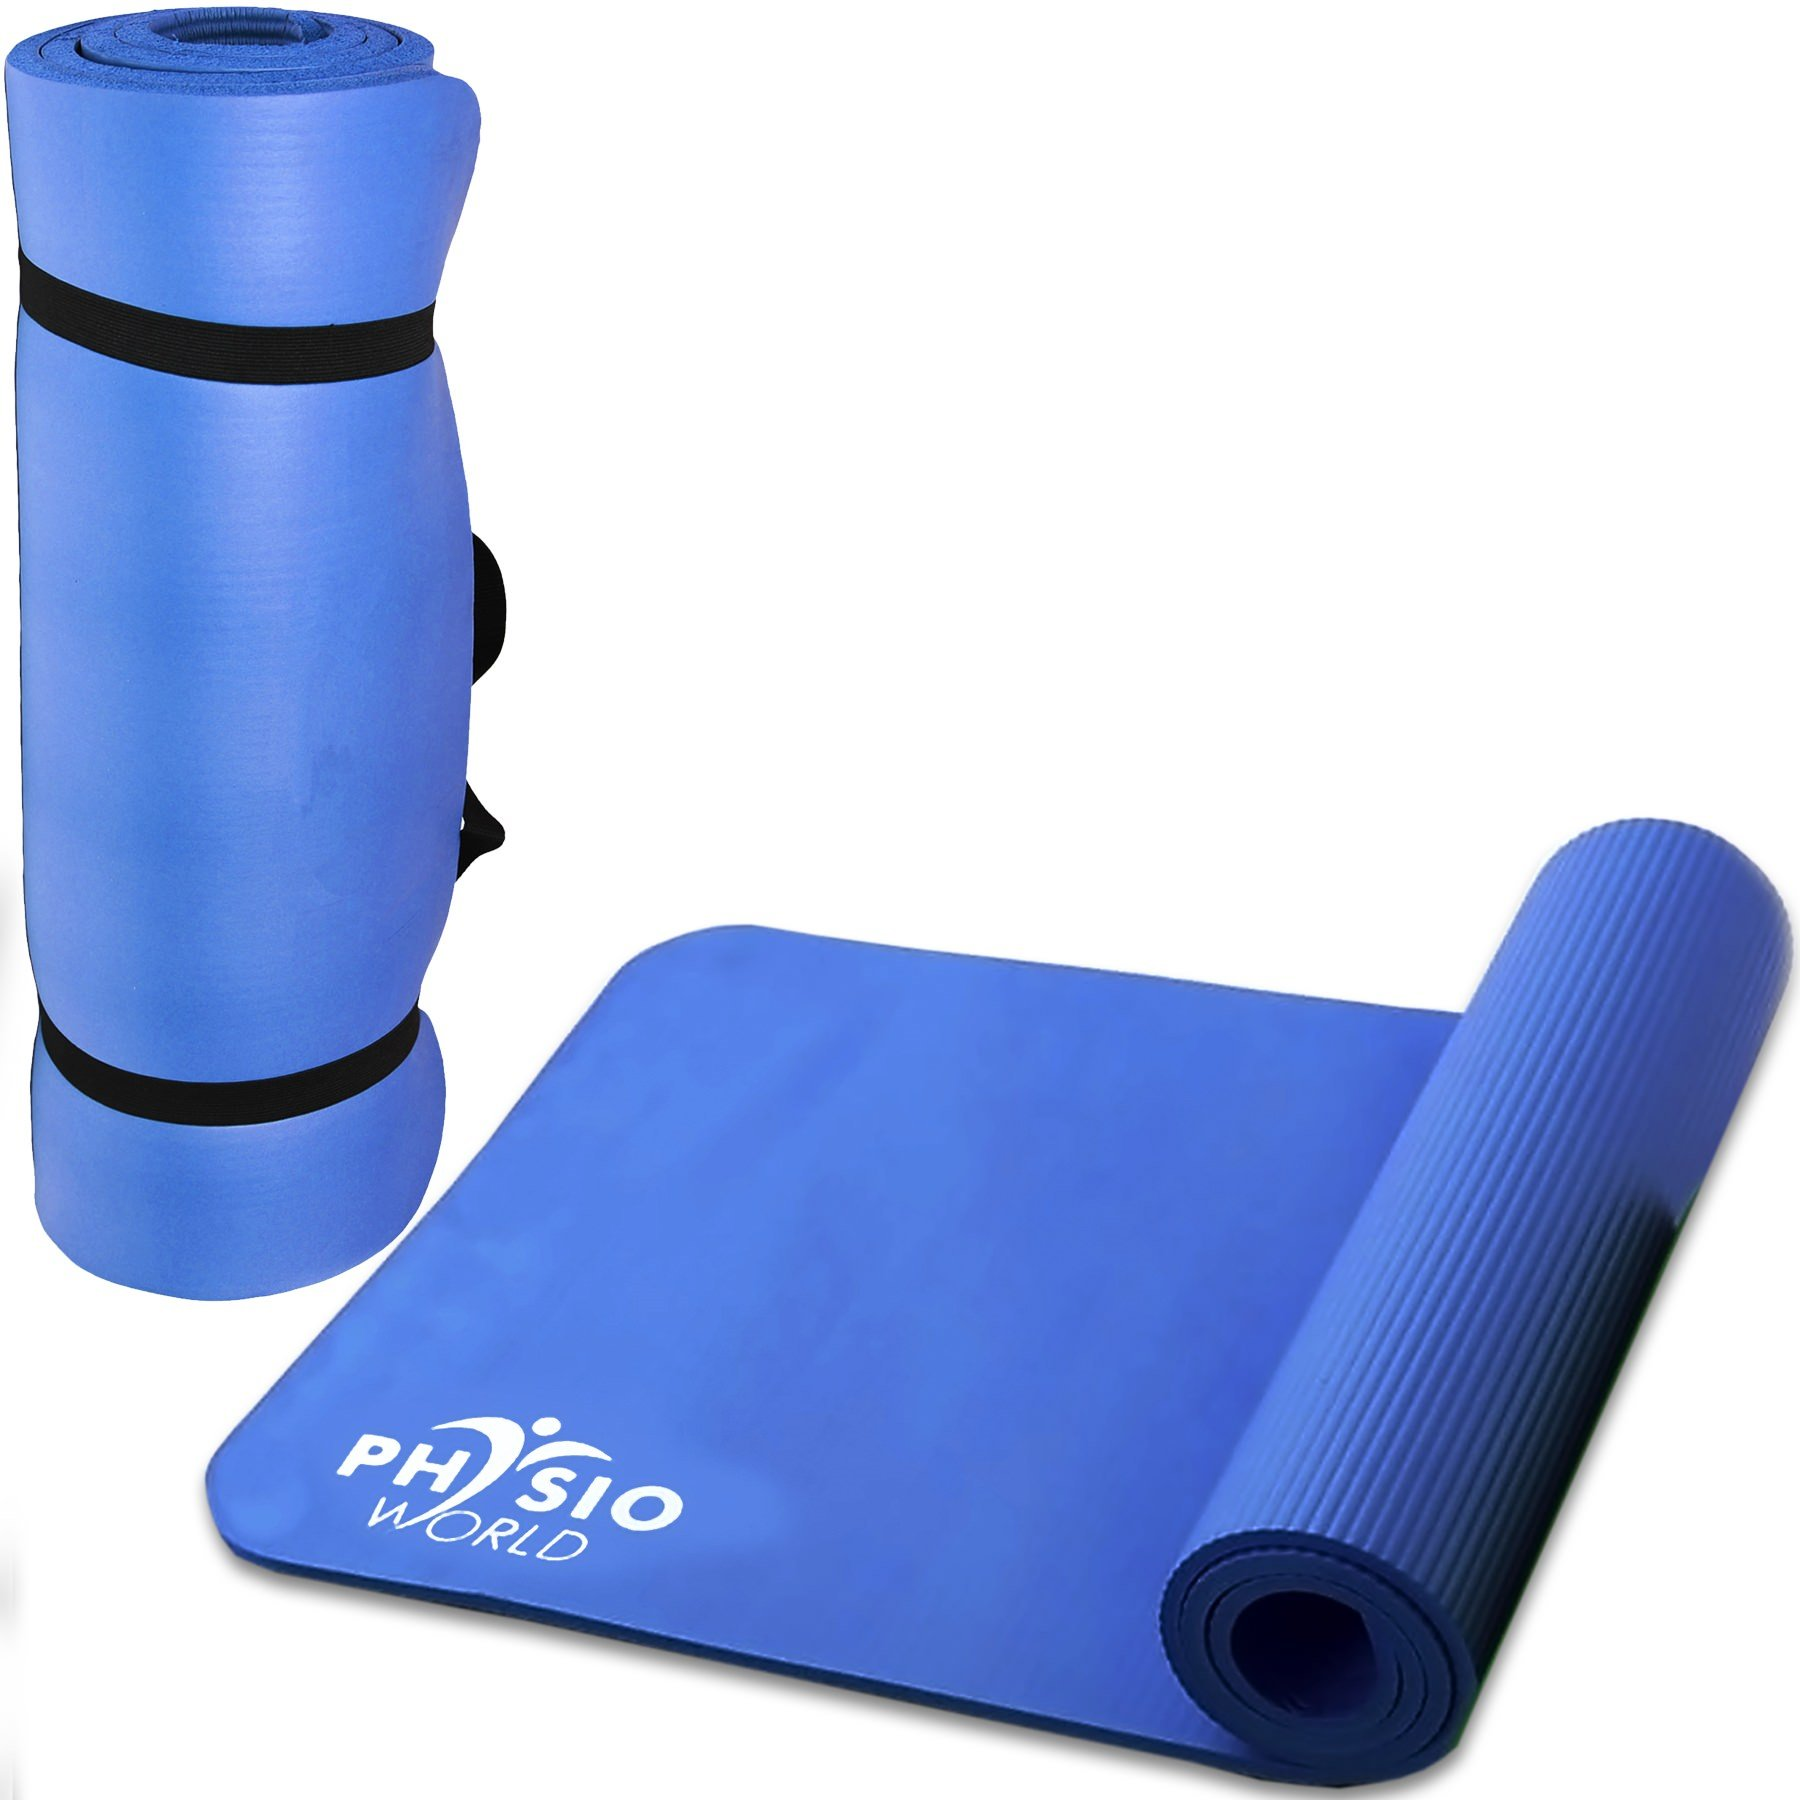 Physio World Thick Exercise Mat - 15mm Blue by phy (Image #2)